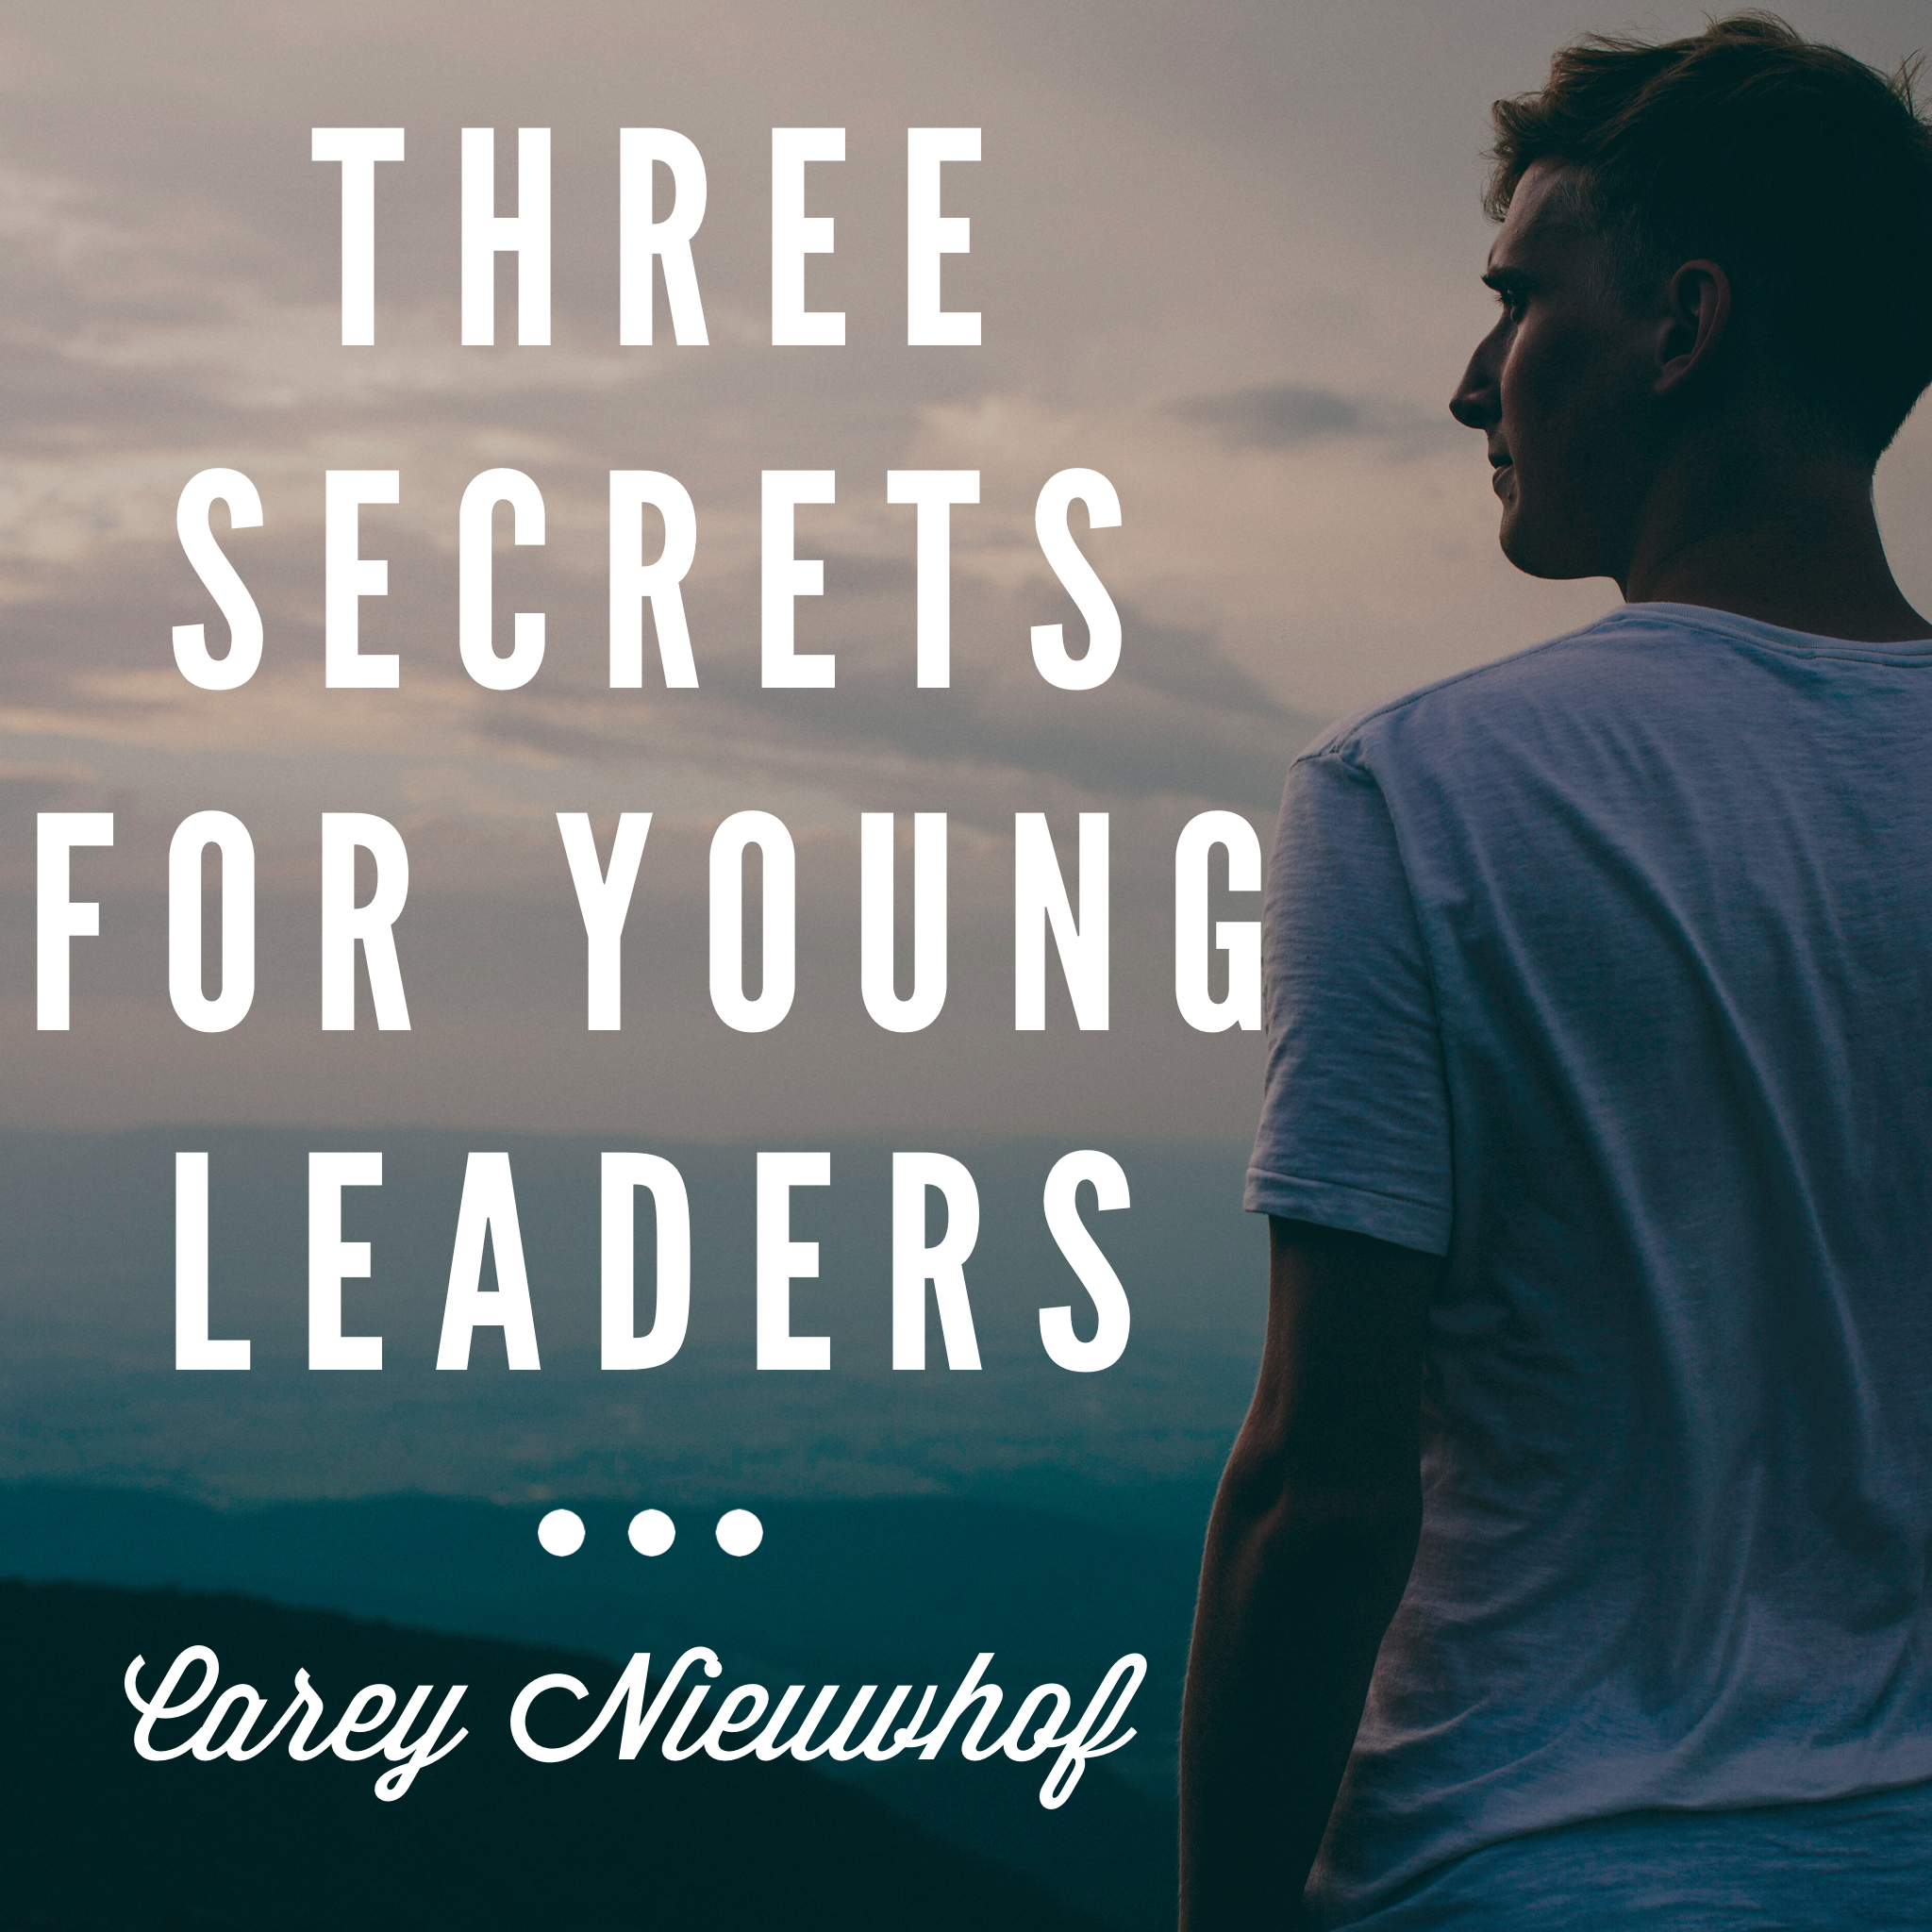 Churches Church Leadership: Carey Nieuwhof Shares Three Secrets For Young Leaders